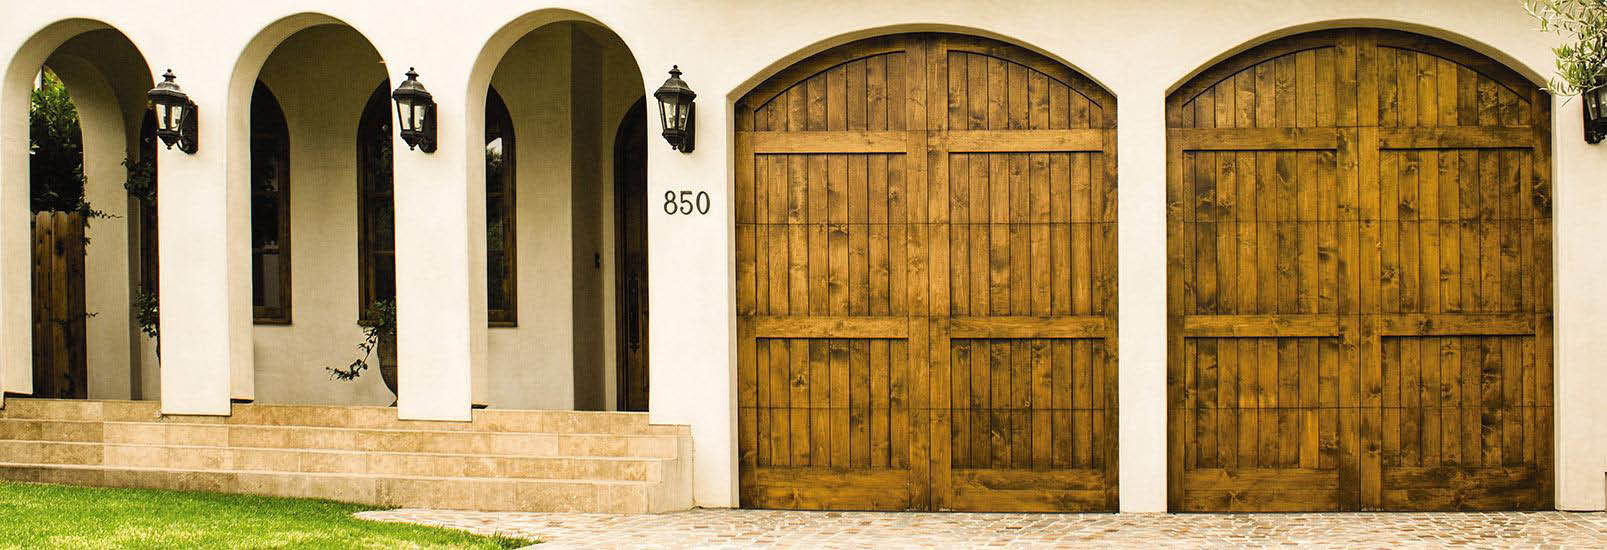 The best prices on garage doors in arizona.Best Garage Door Parts in AZ Best & Discount Wayne Dalton Garage Doors | A-Authentic Garage Door Phoenix